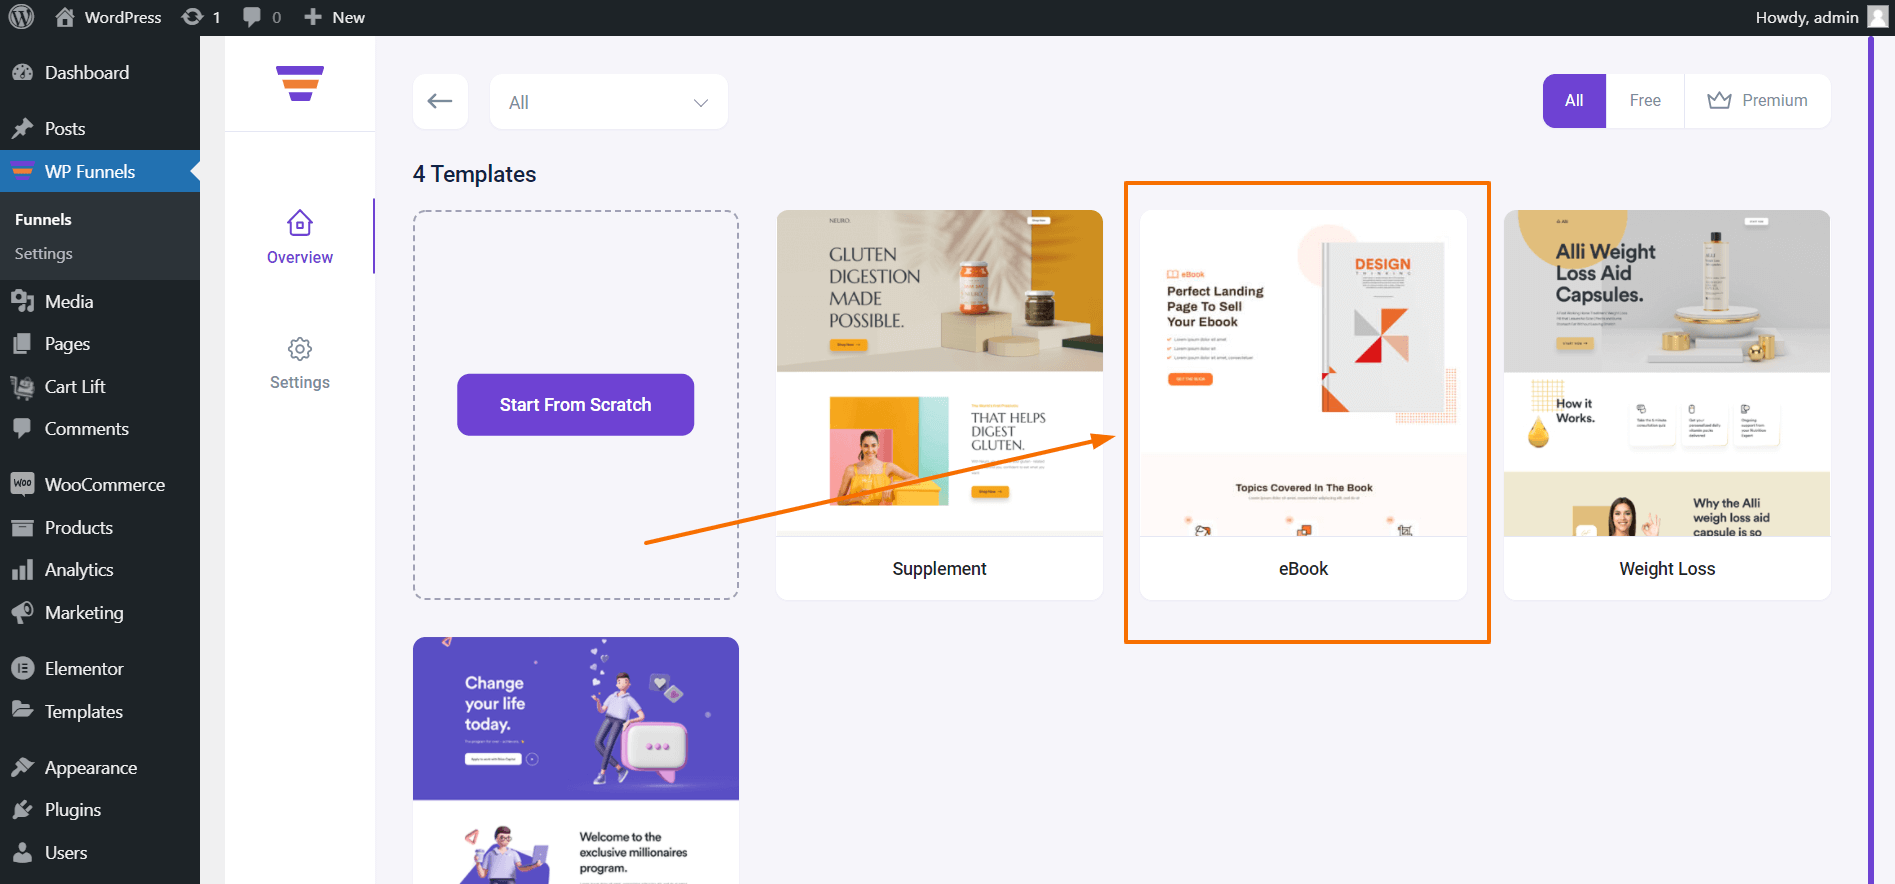 WP Funnels Import Template